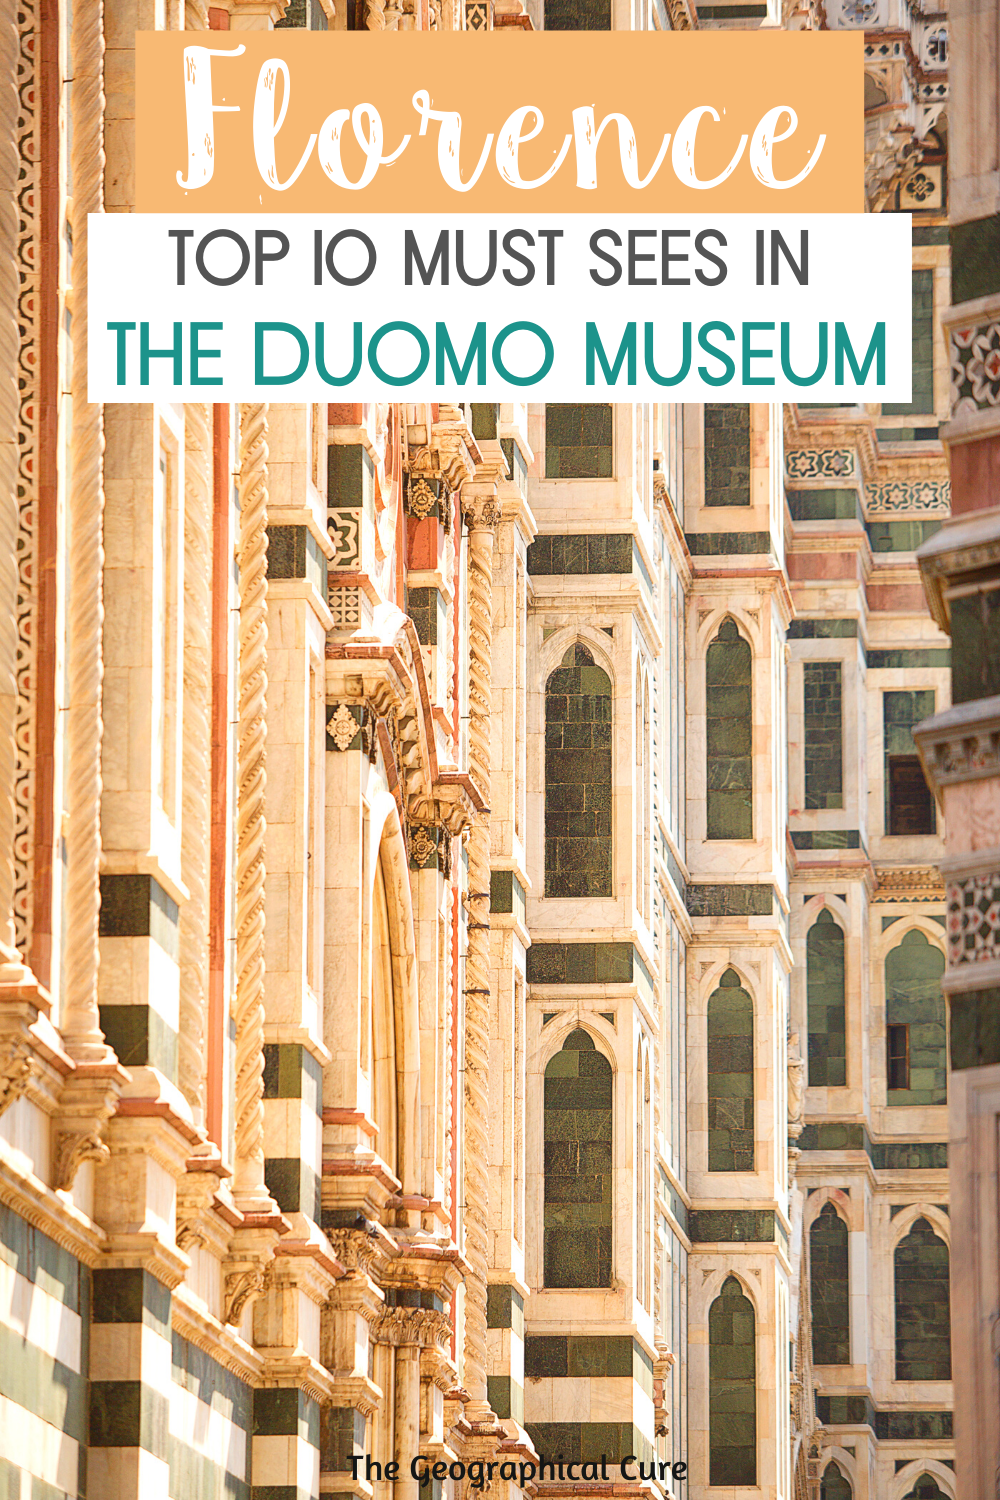 Top 10 Masterpieces of the Duomo Museum in Florence Italy